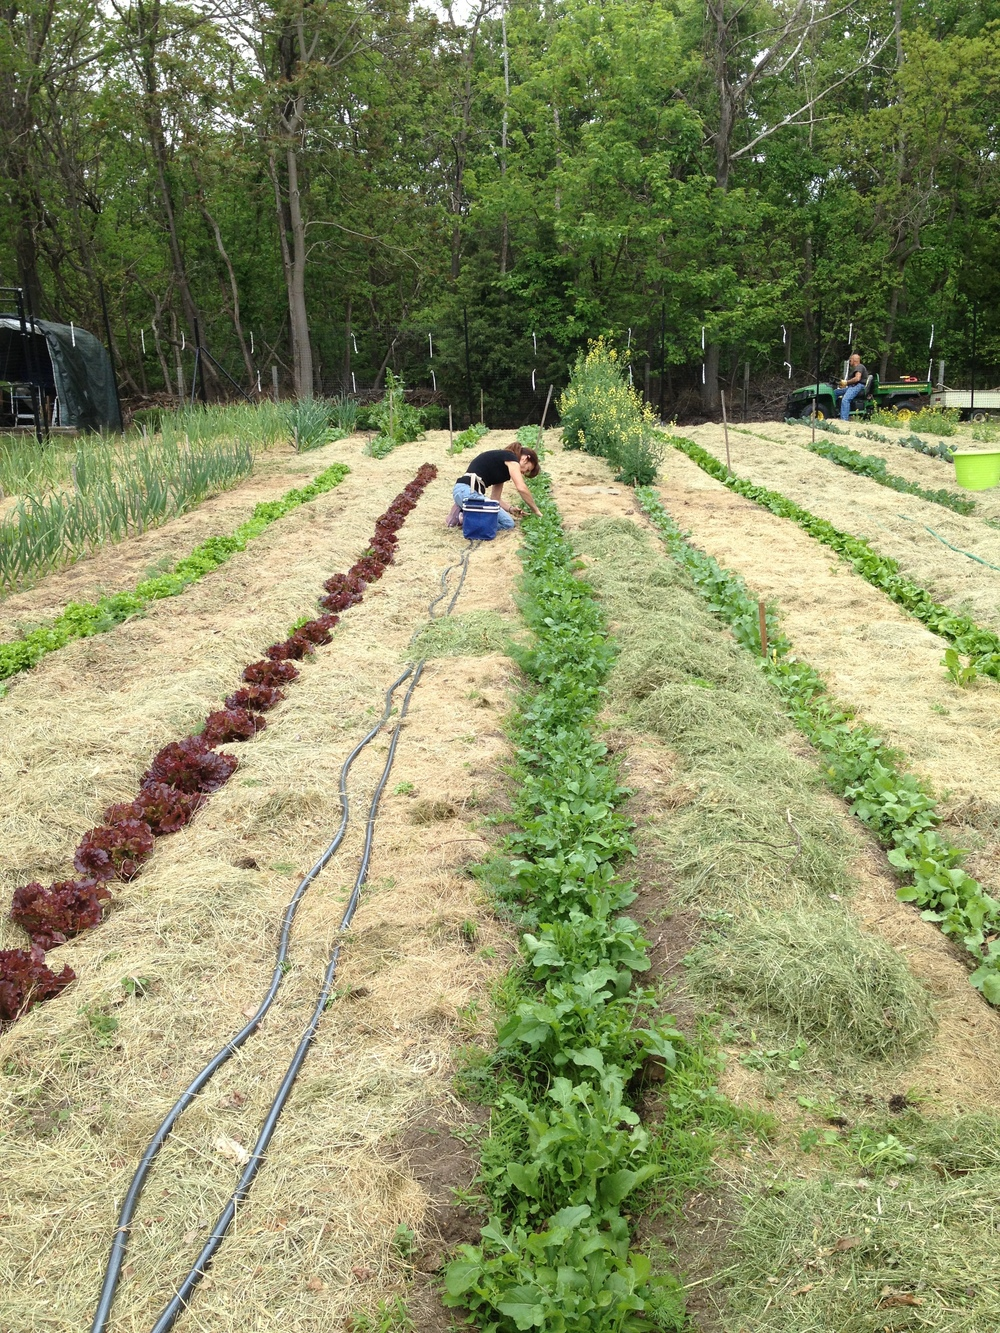 Linda picking from a long row of arugula.